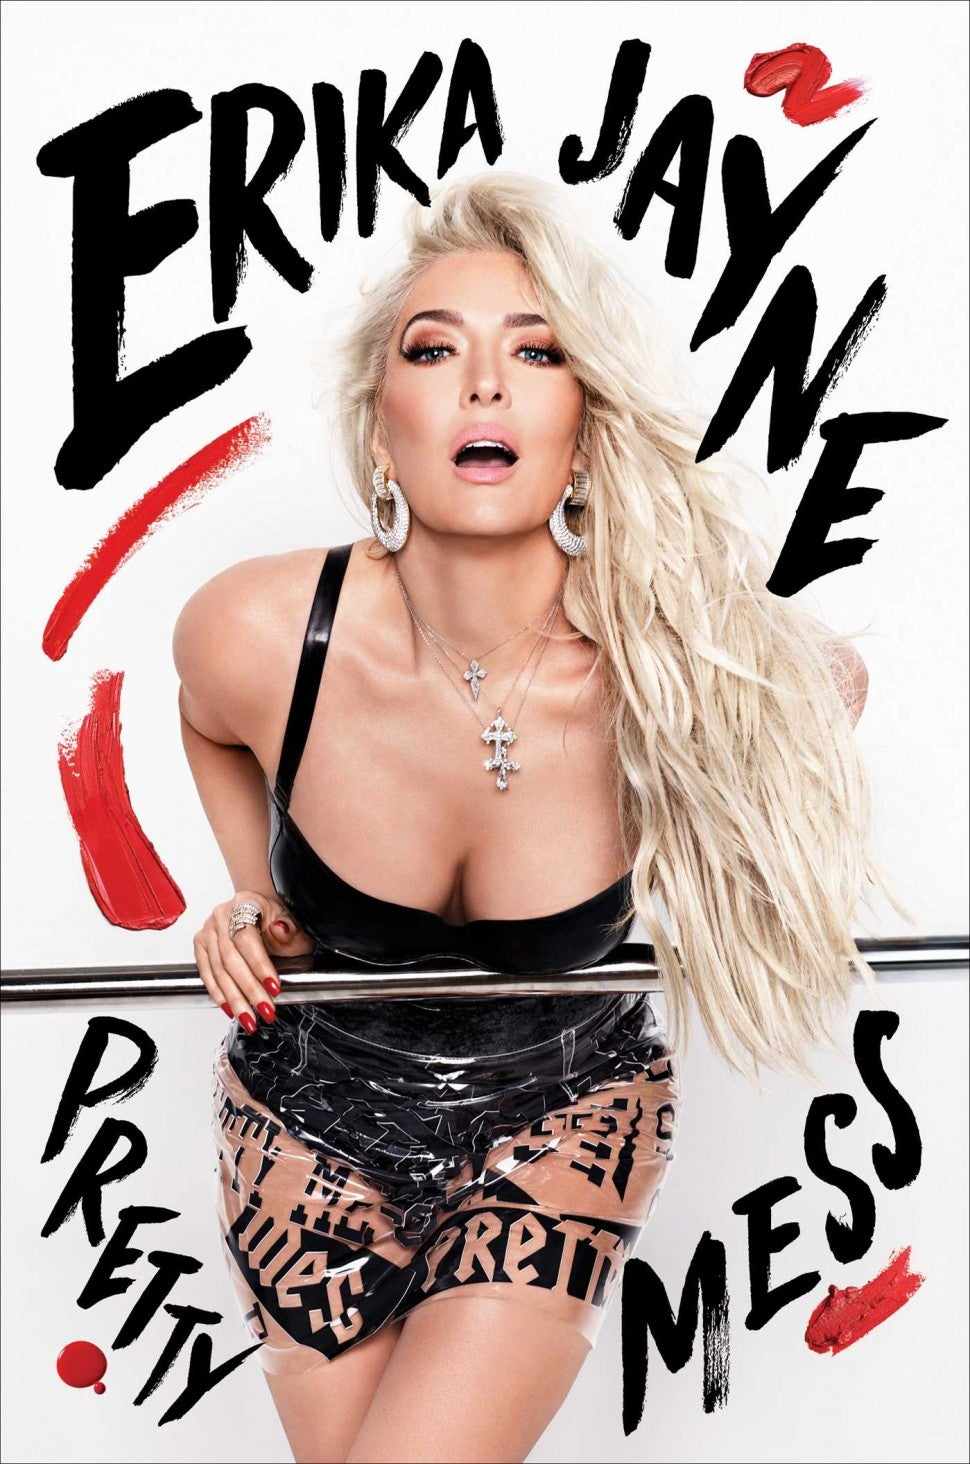 Erika Jayne's 'Pretty Mess' book cover.